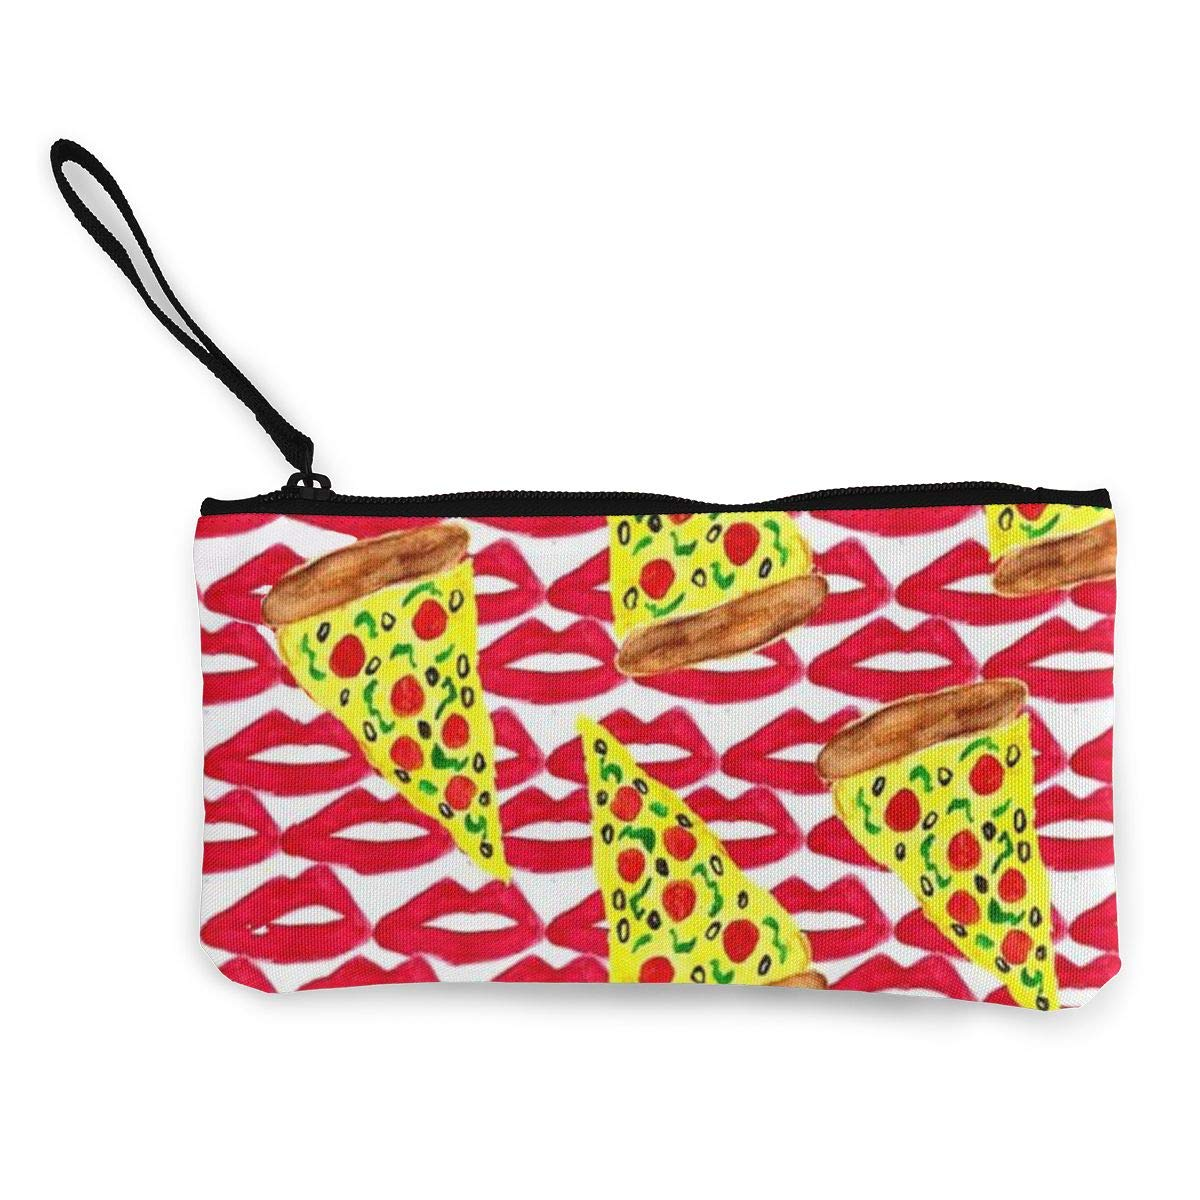 DH14hjsdDEE Lips Pizza Zipper Canvas Coin Purse Wallet Cellphone Bag With Handle Make Up Bag